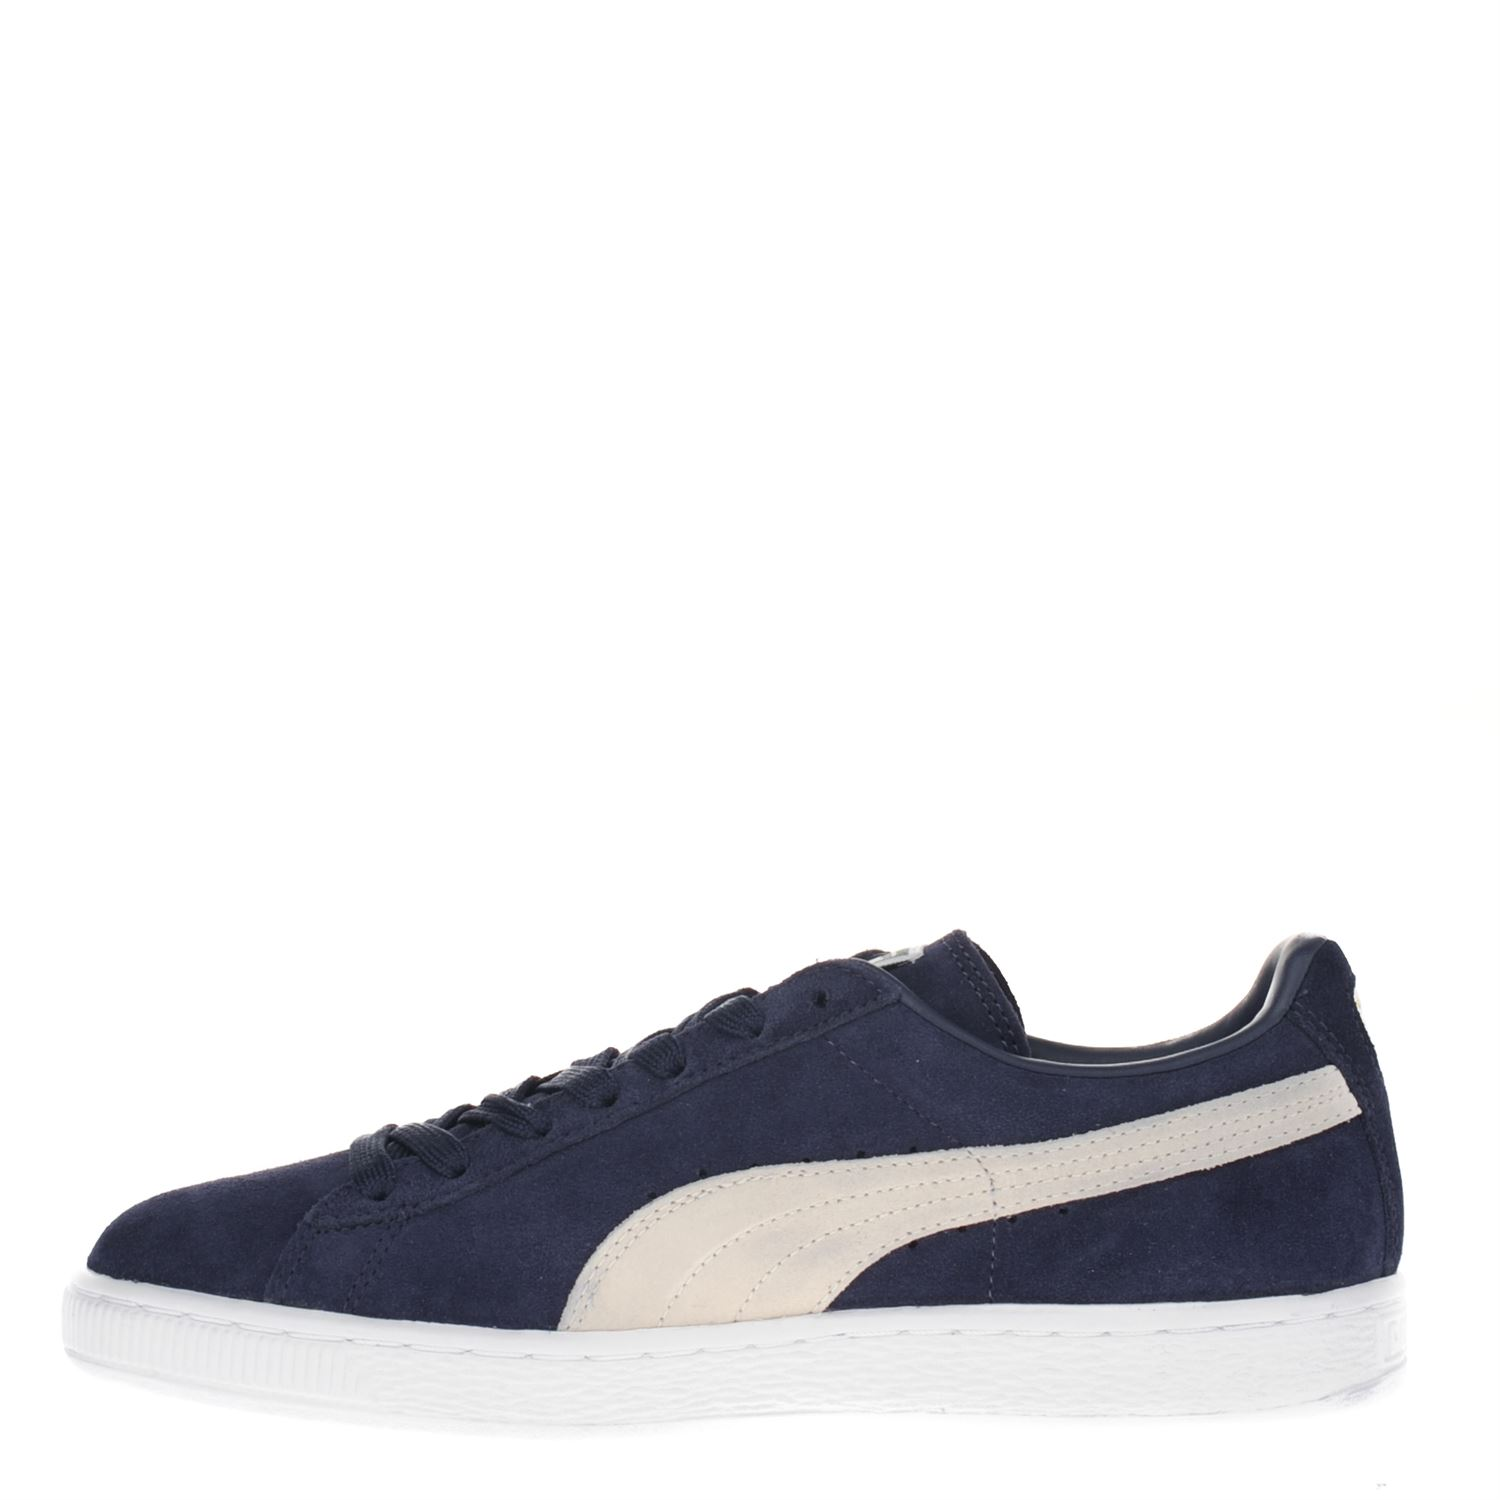 f4be099659c Puma Suede Classic heren lage sneakers blauw